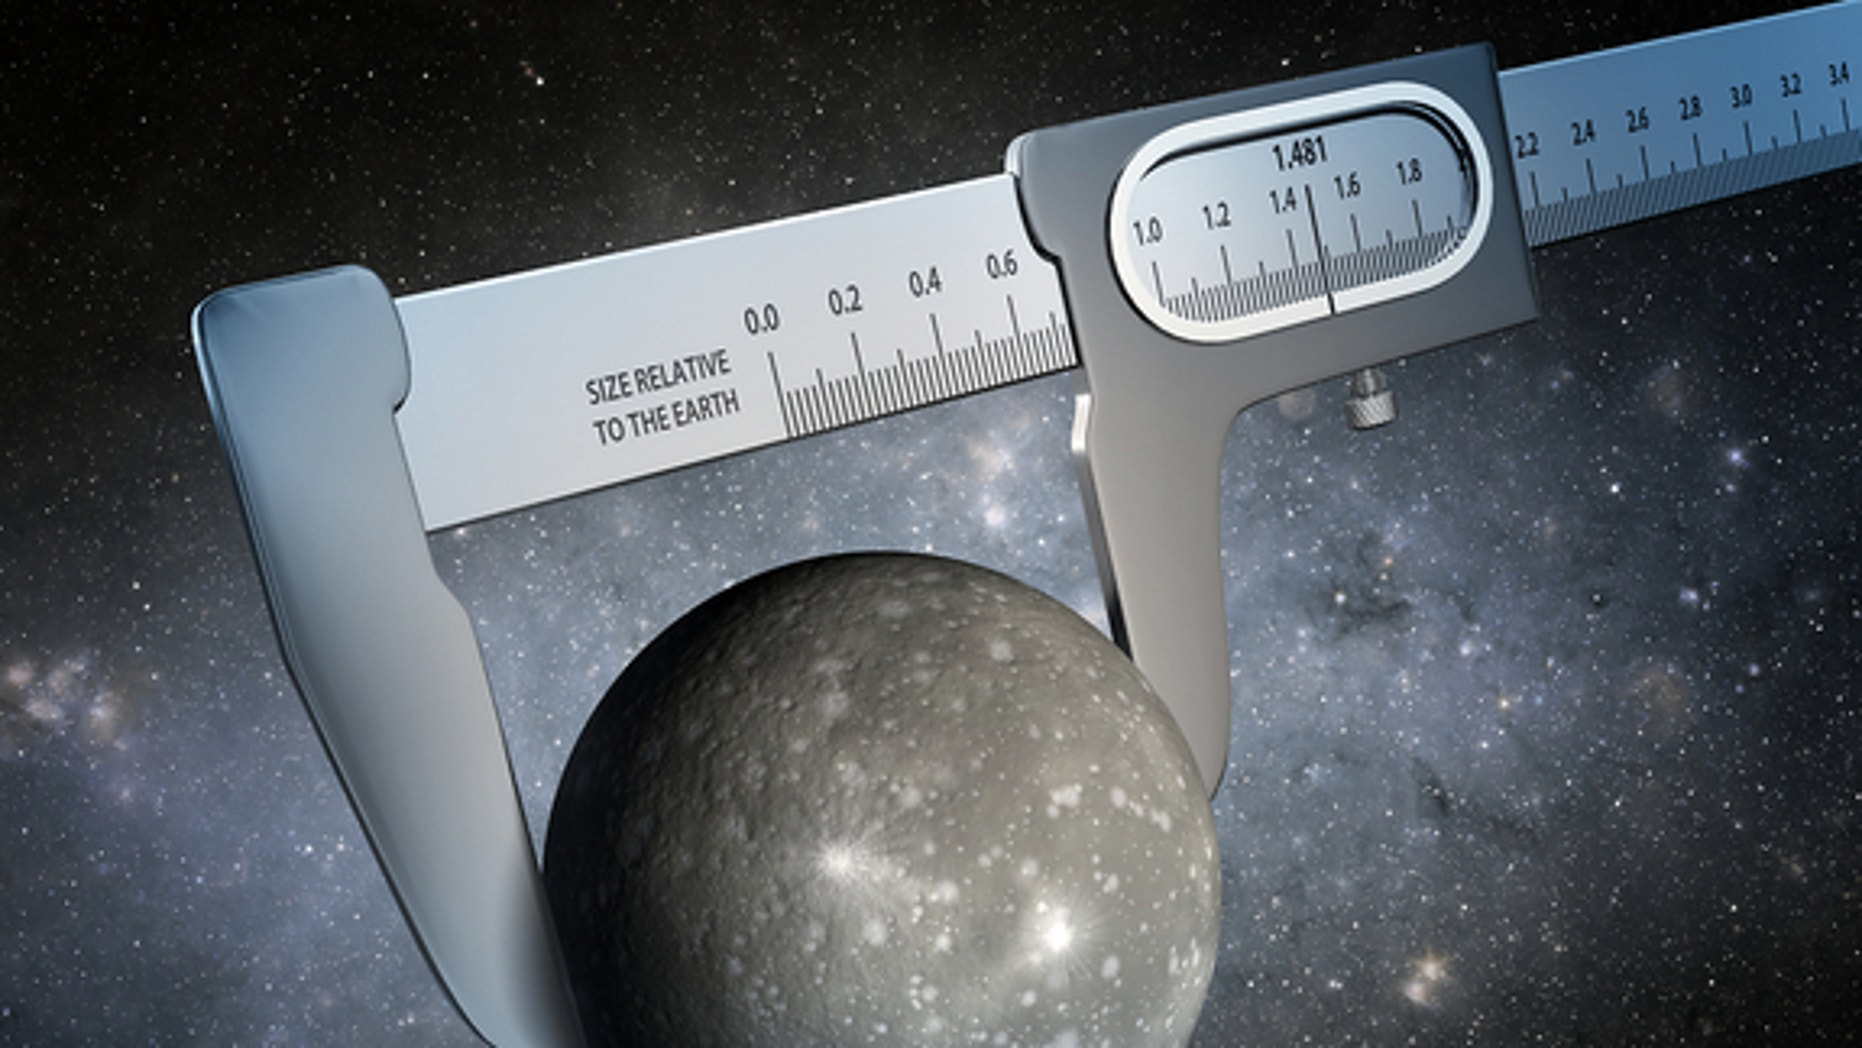 An illustration displays takes artistic licences in depicting how scientists have made the most precise measurement of the size of an exoplanet. Image released July 23, 2014.